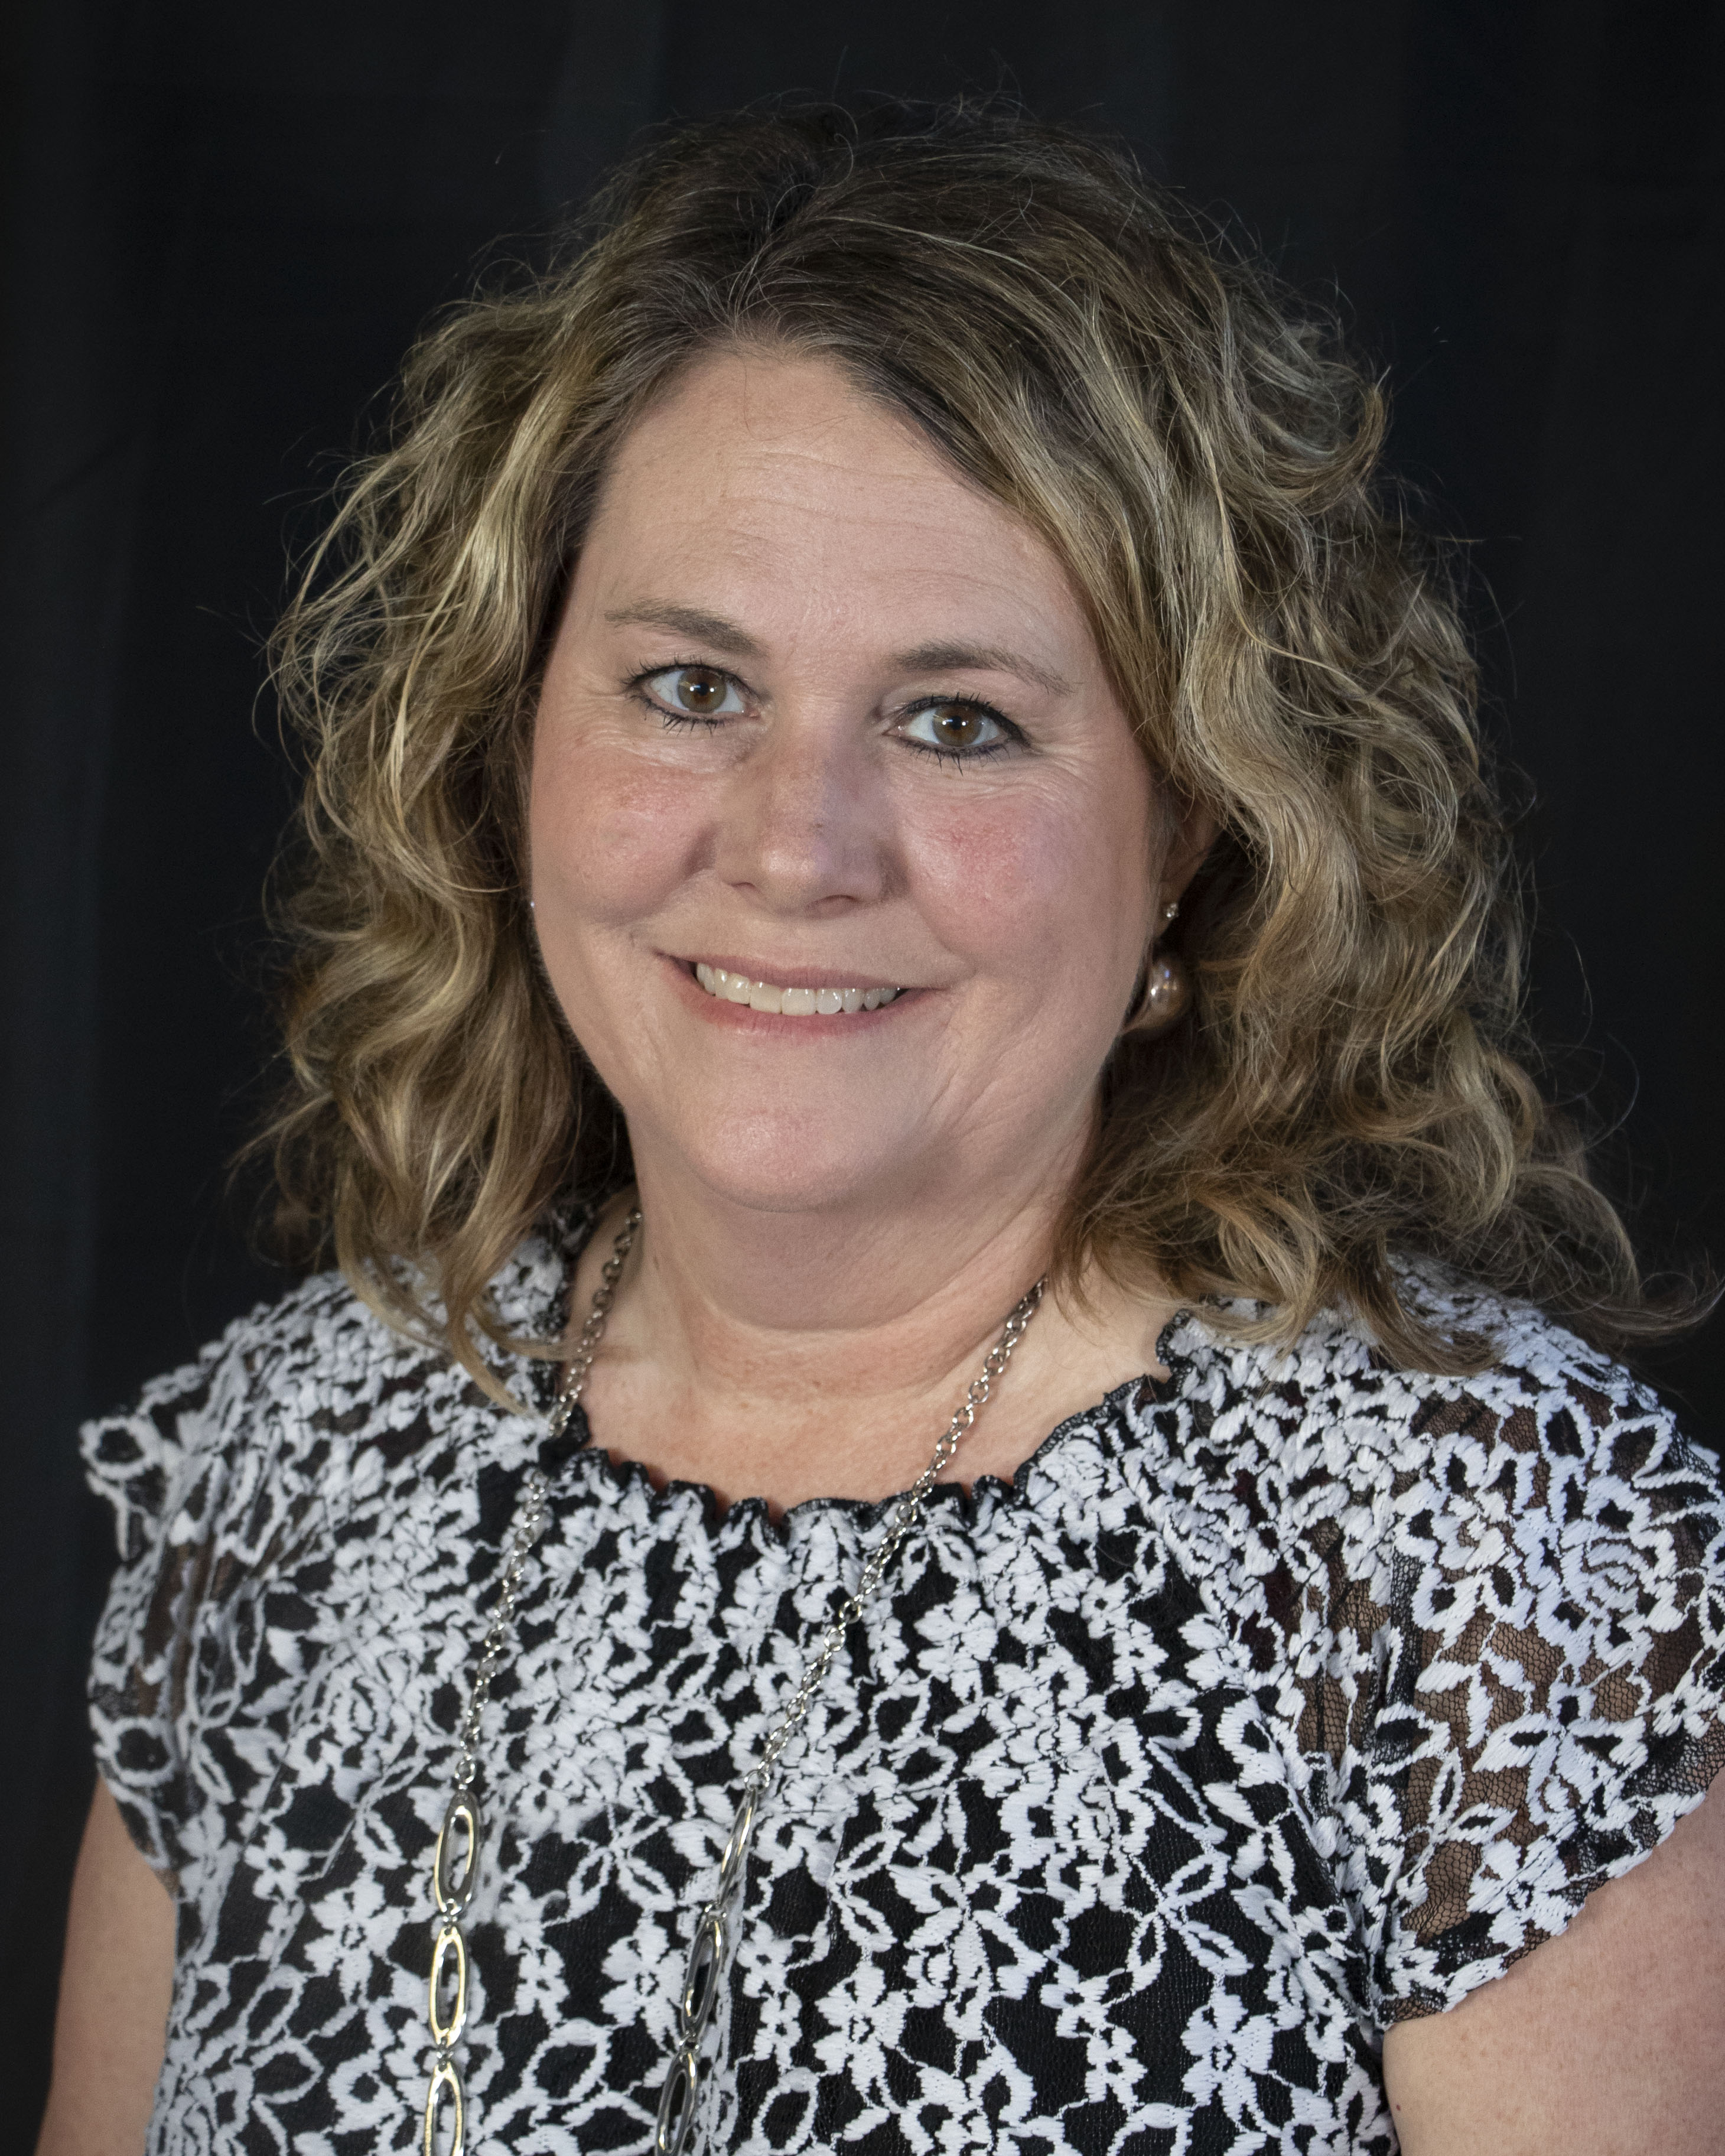 Debra Spradley, Principal of Tommy Smith Elementary School in Panama City Florida